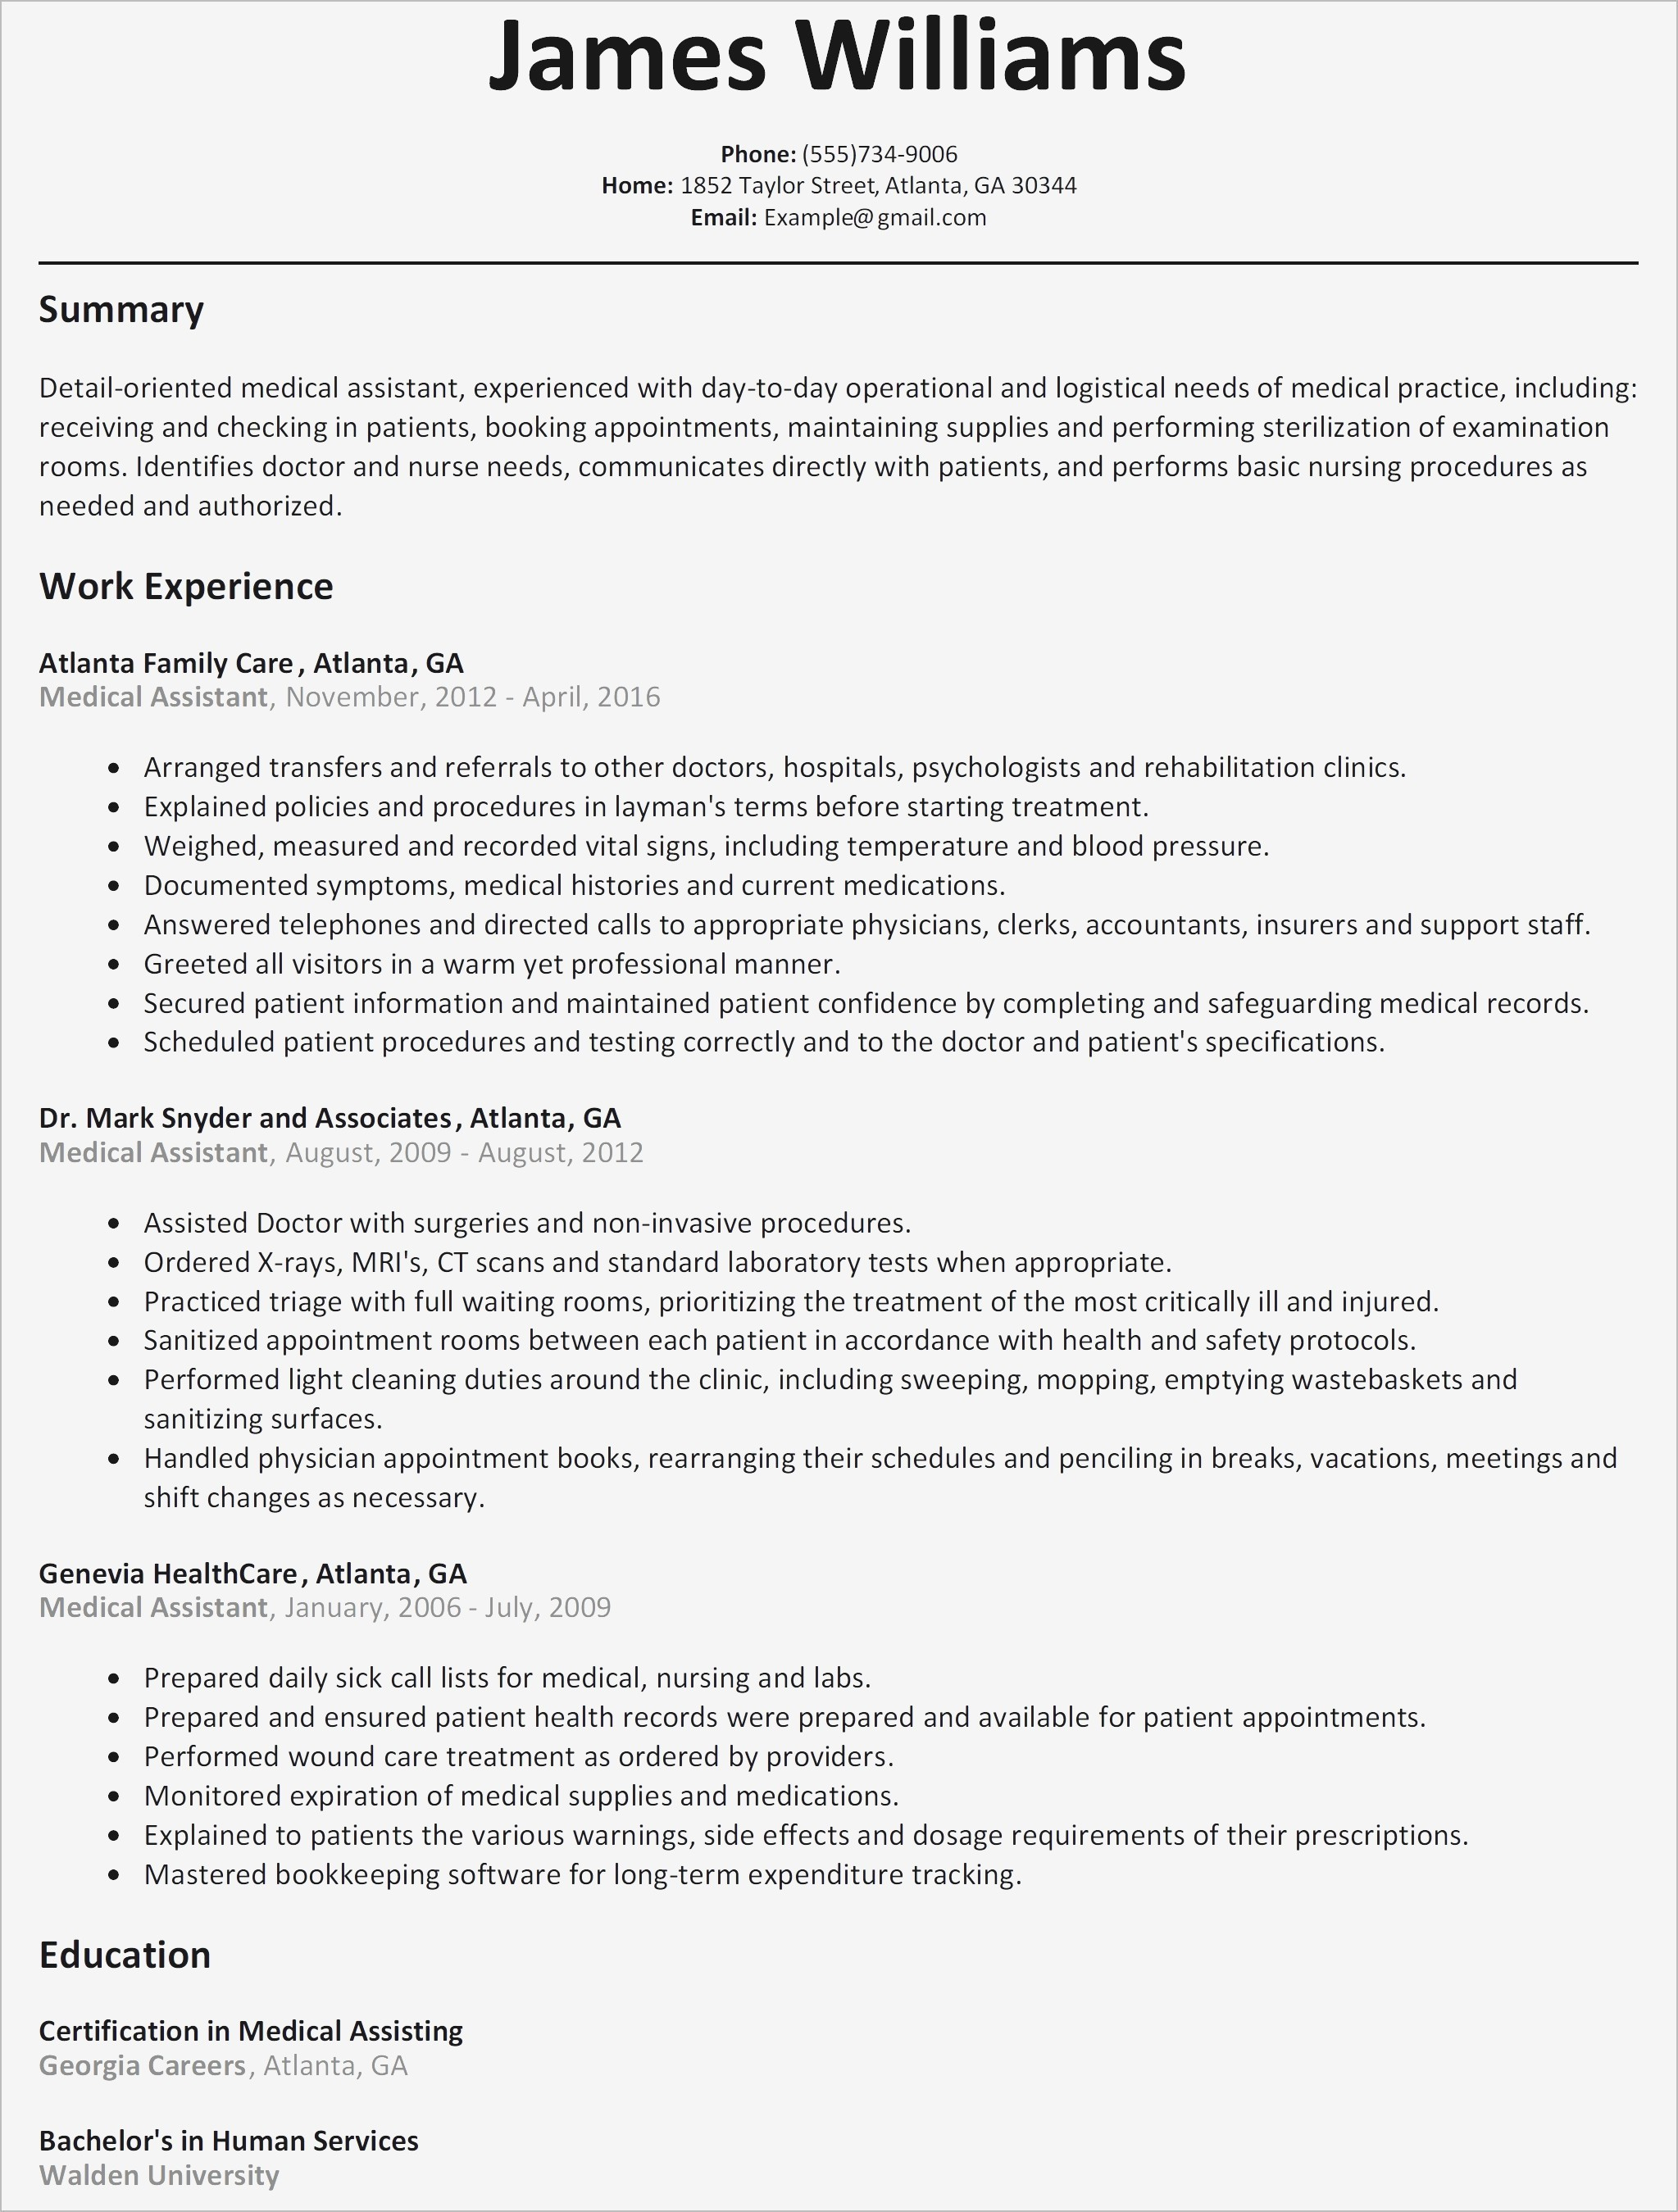 Manual Tester Resume - Manual Testing Resume Beautiful Manual Testing Resume for 3 Years